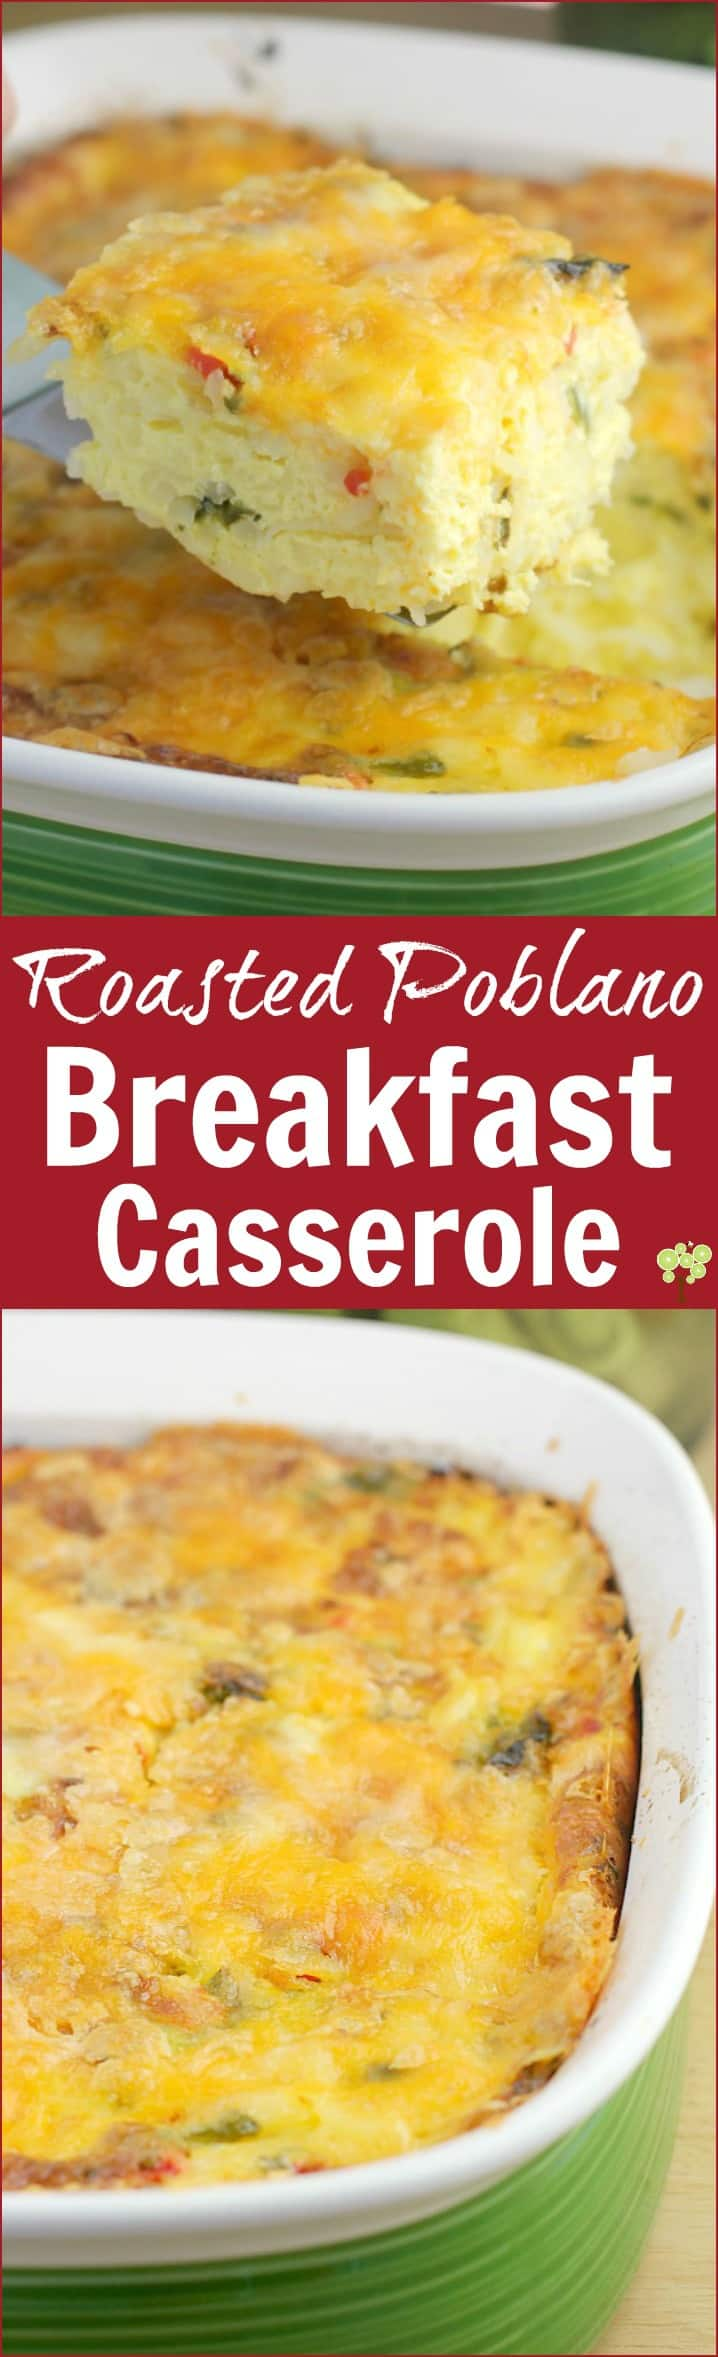 Roasted Poblano Breakfast Casserole http://wp.me/p4qC4h-3Az